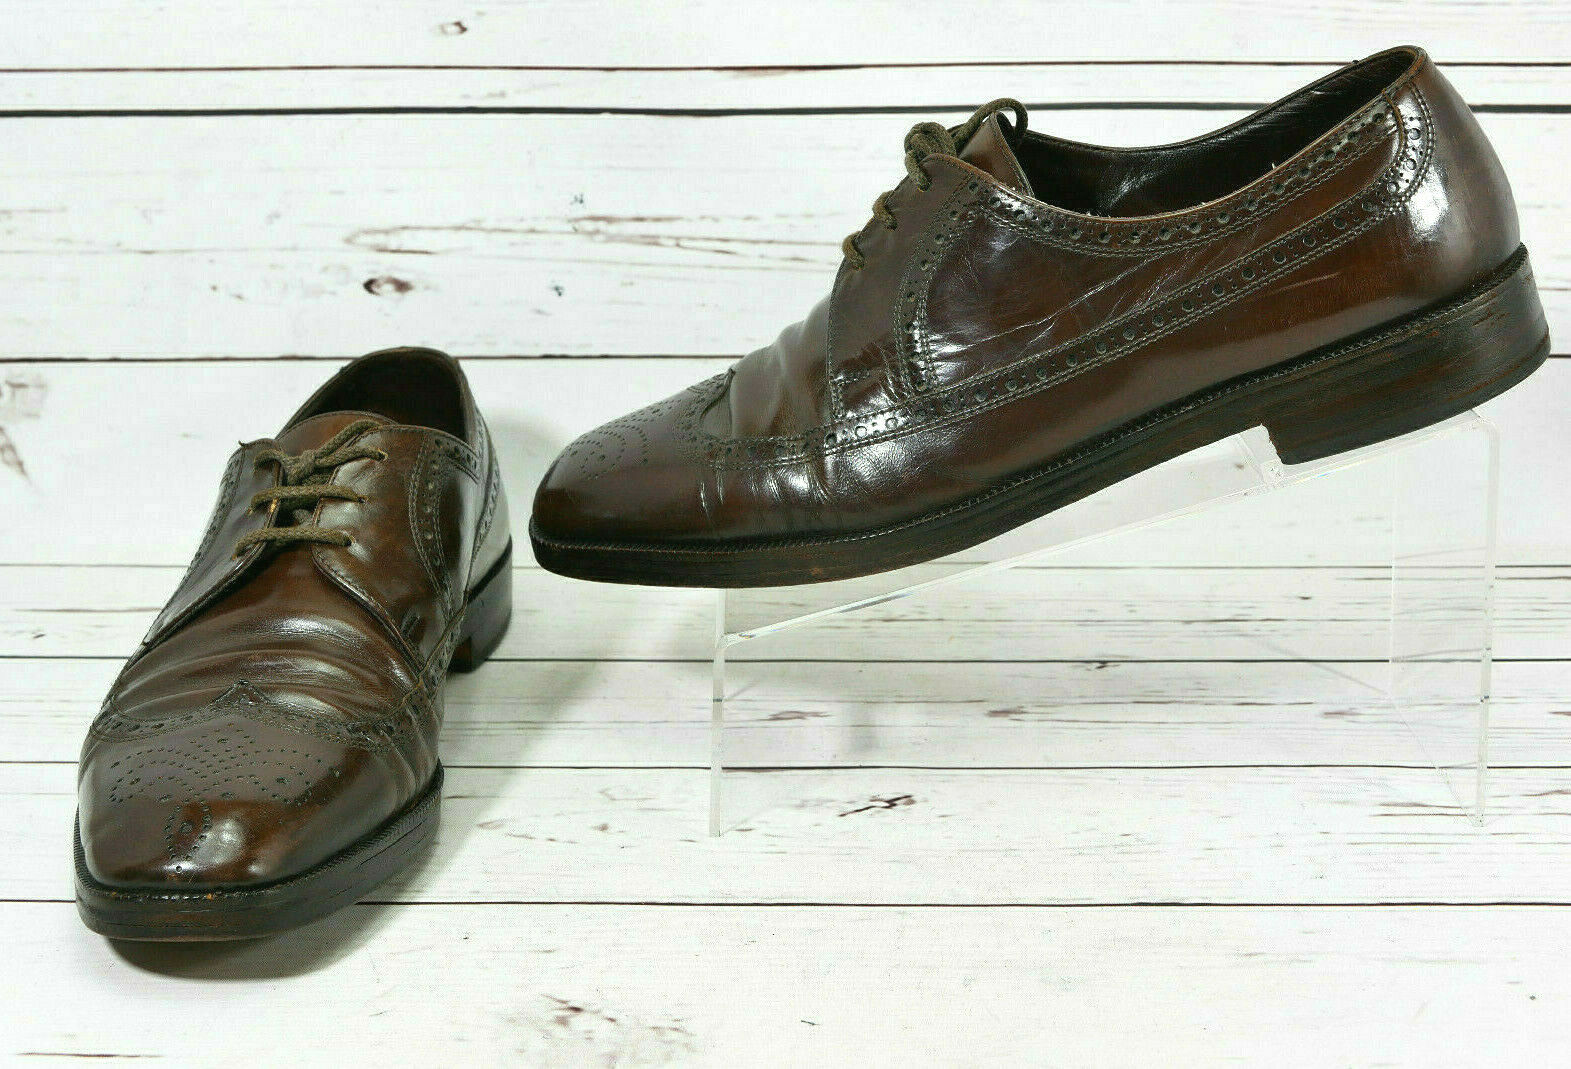 Bally Prestige Brown Leather Oxfords Wingtip Dress Mens Size 11 E Wide shoes